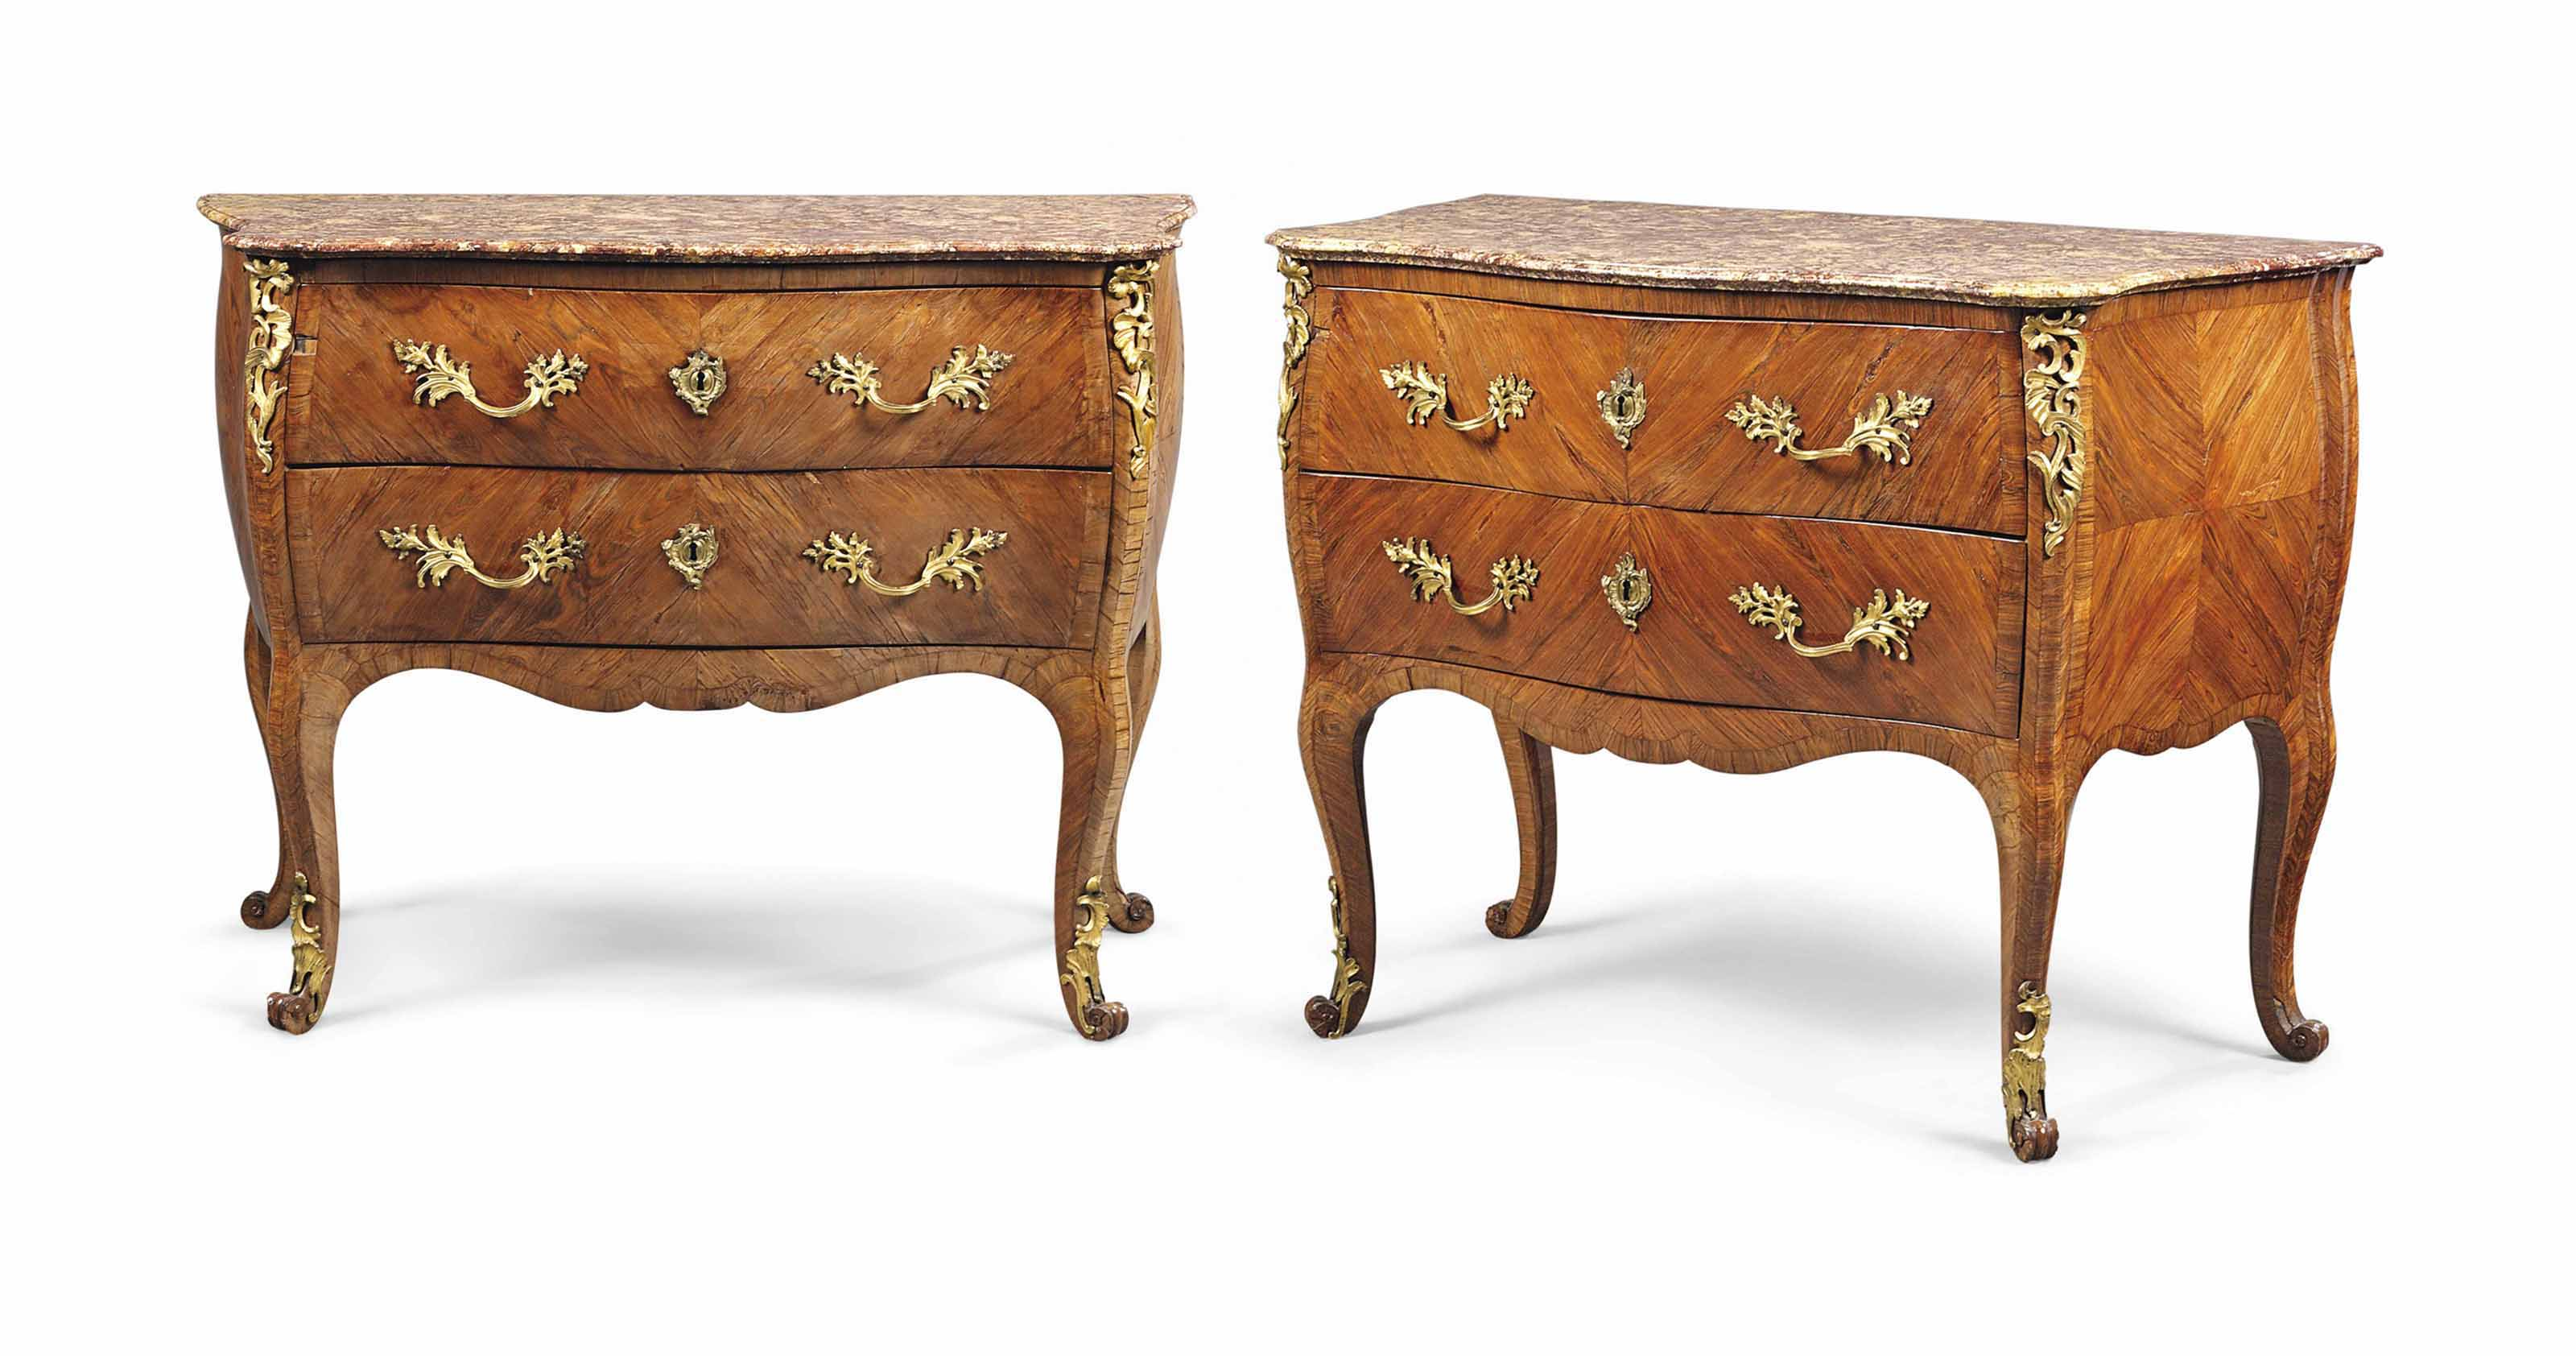 A PAIR OF NORTH ITALIAN ORMOLU-MOUNTED KINGWOOD COMMODES